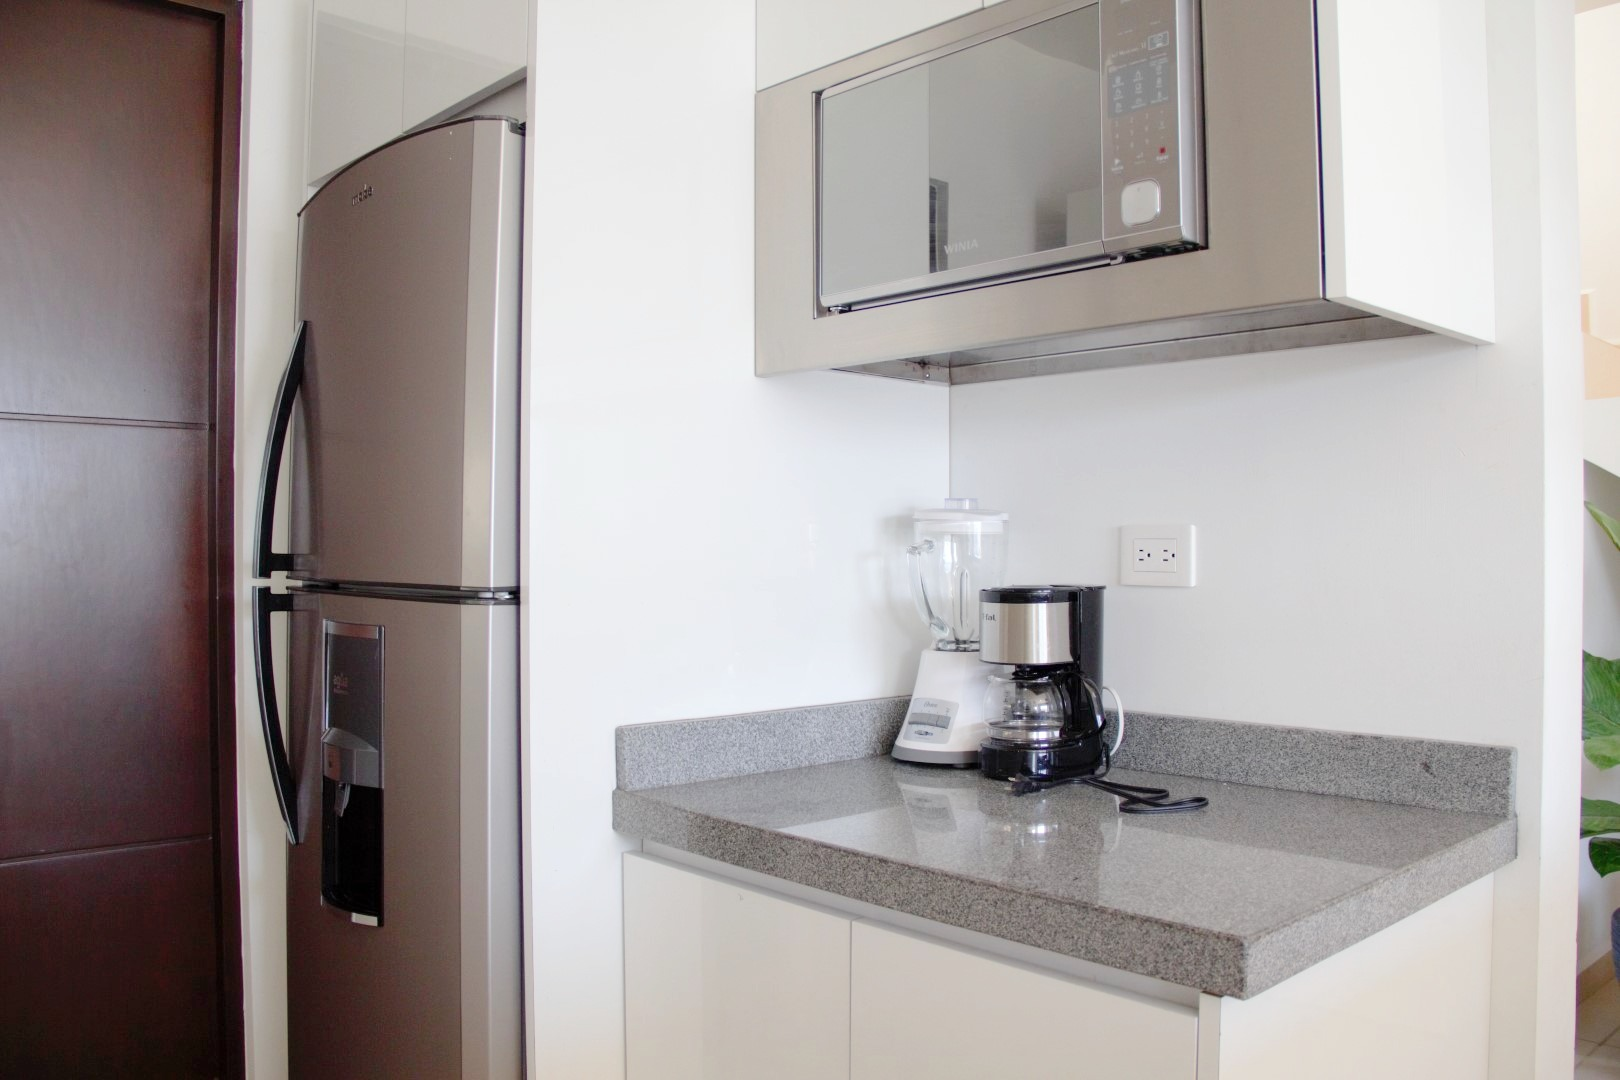 Kitchen with refrigerator, coffee maker and blender, and mounted microwave.